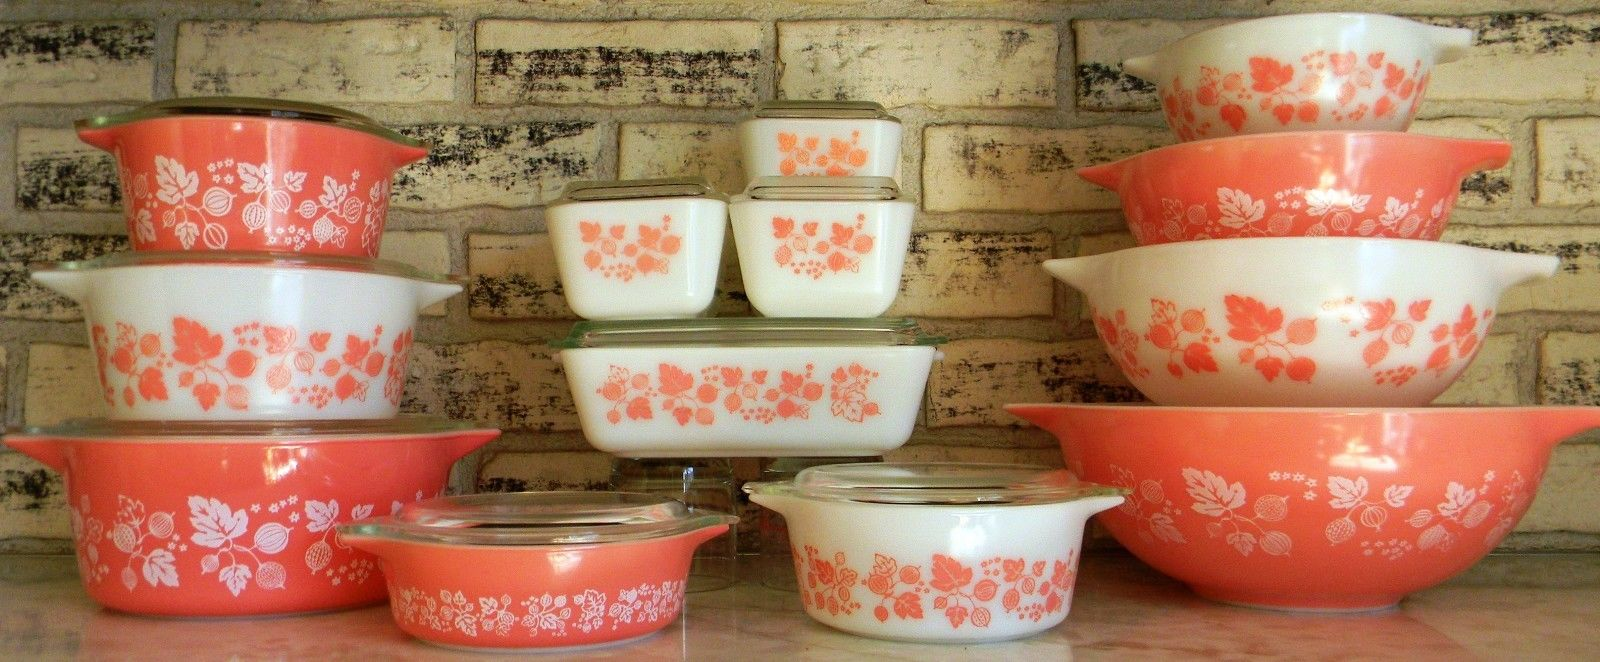 vintage-pyrex-patterns